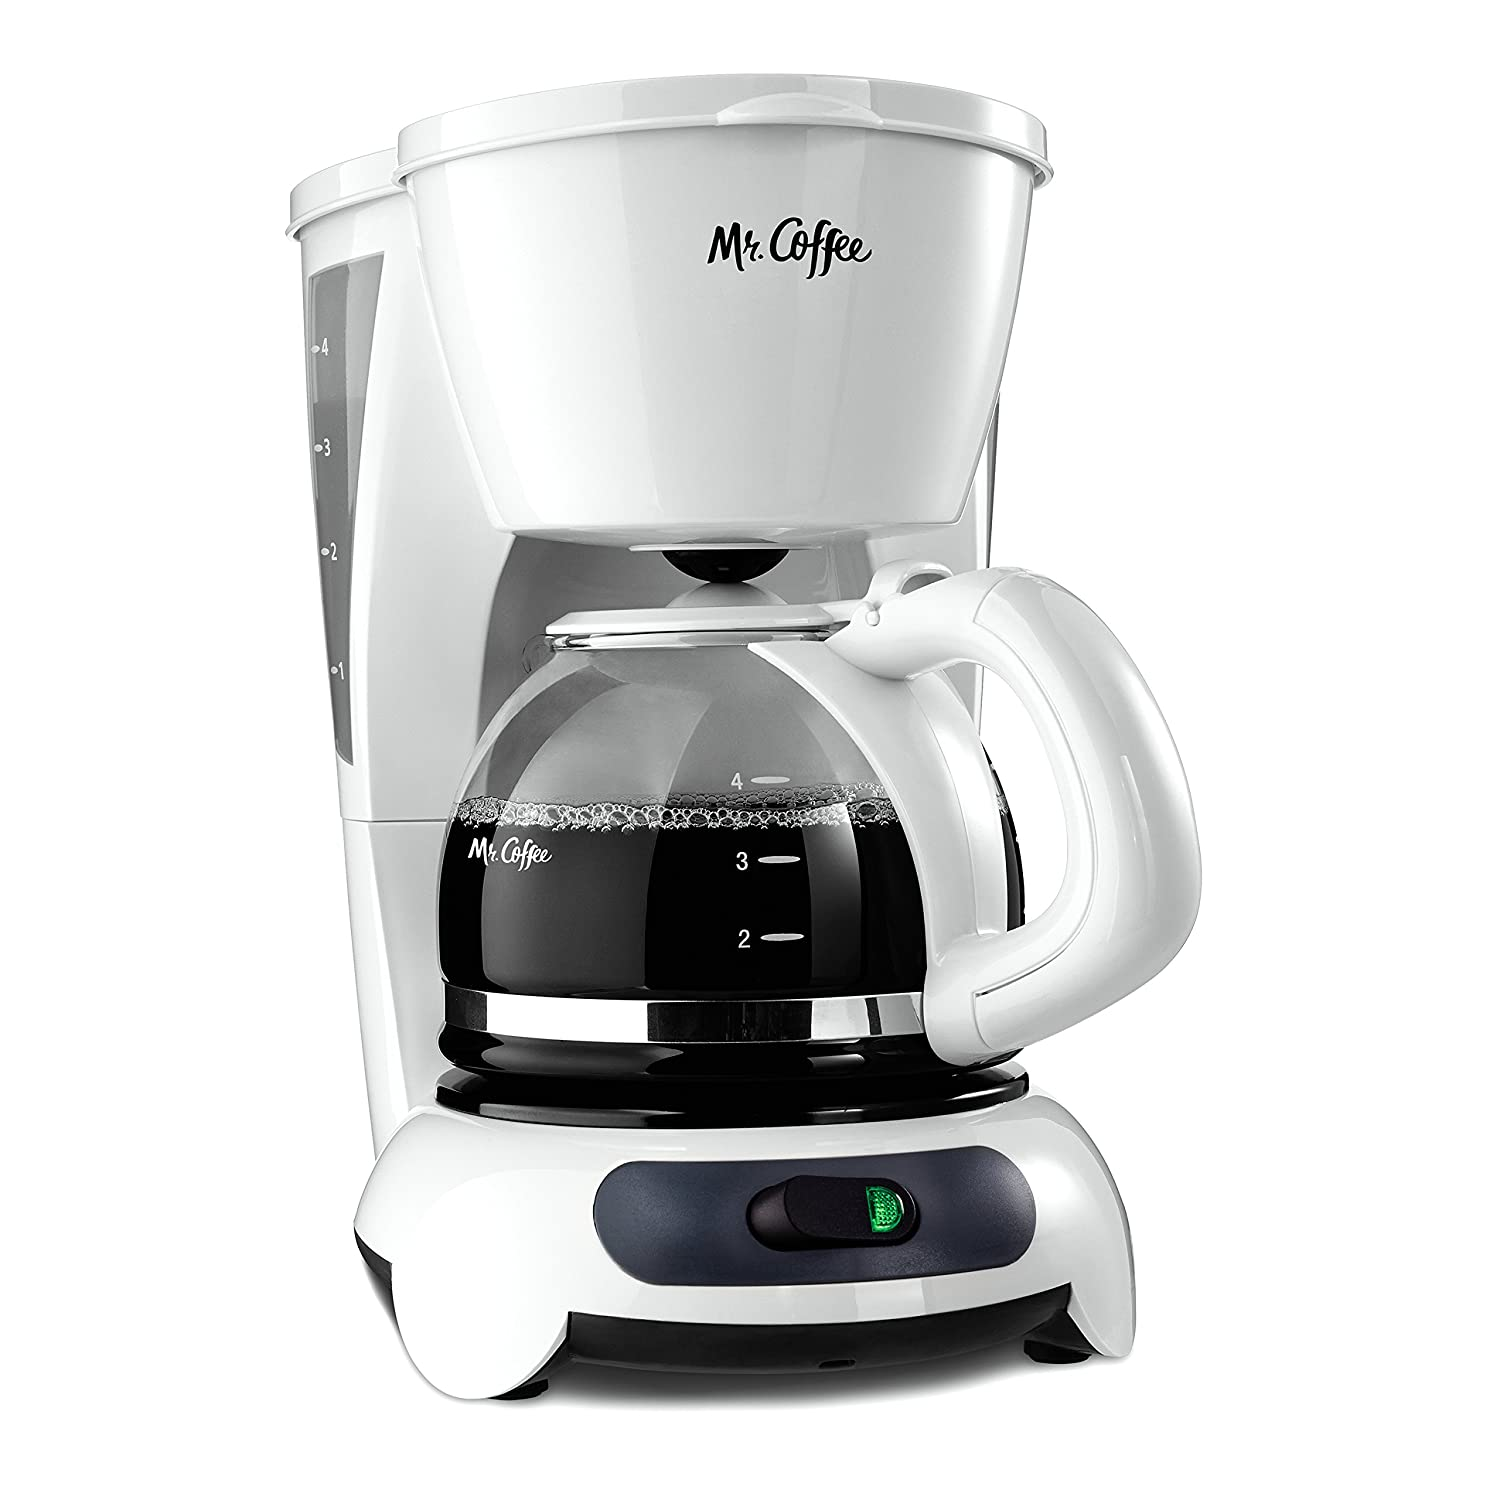 Mr. Coffee TF4GTF-RB Coffee Maker BUNDLE W/GOLD TONE FILTER